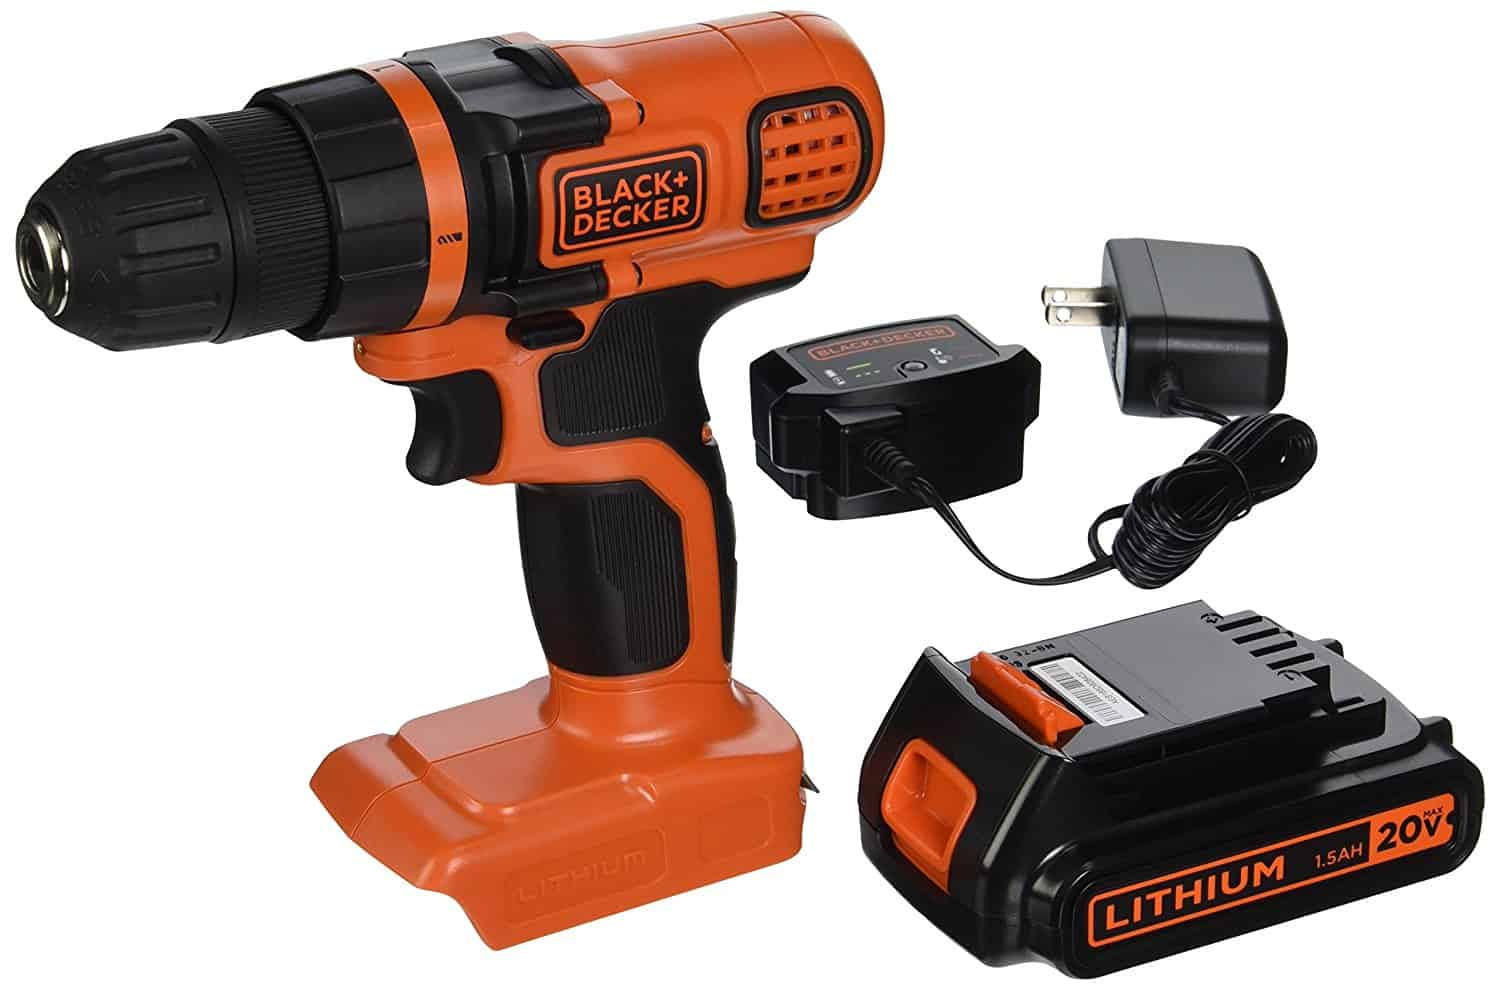 Show Me A Wiring Diagram For Small Black Decker Drill 53 Power Tool Sl1500 How To Use Primer At